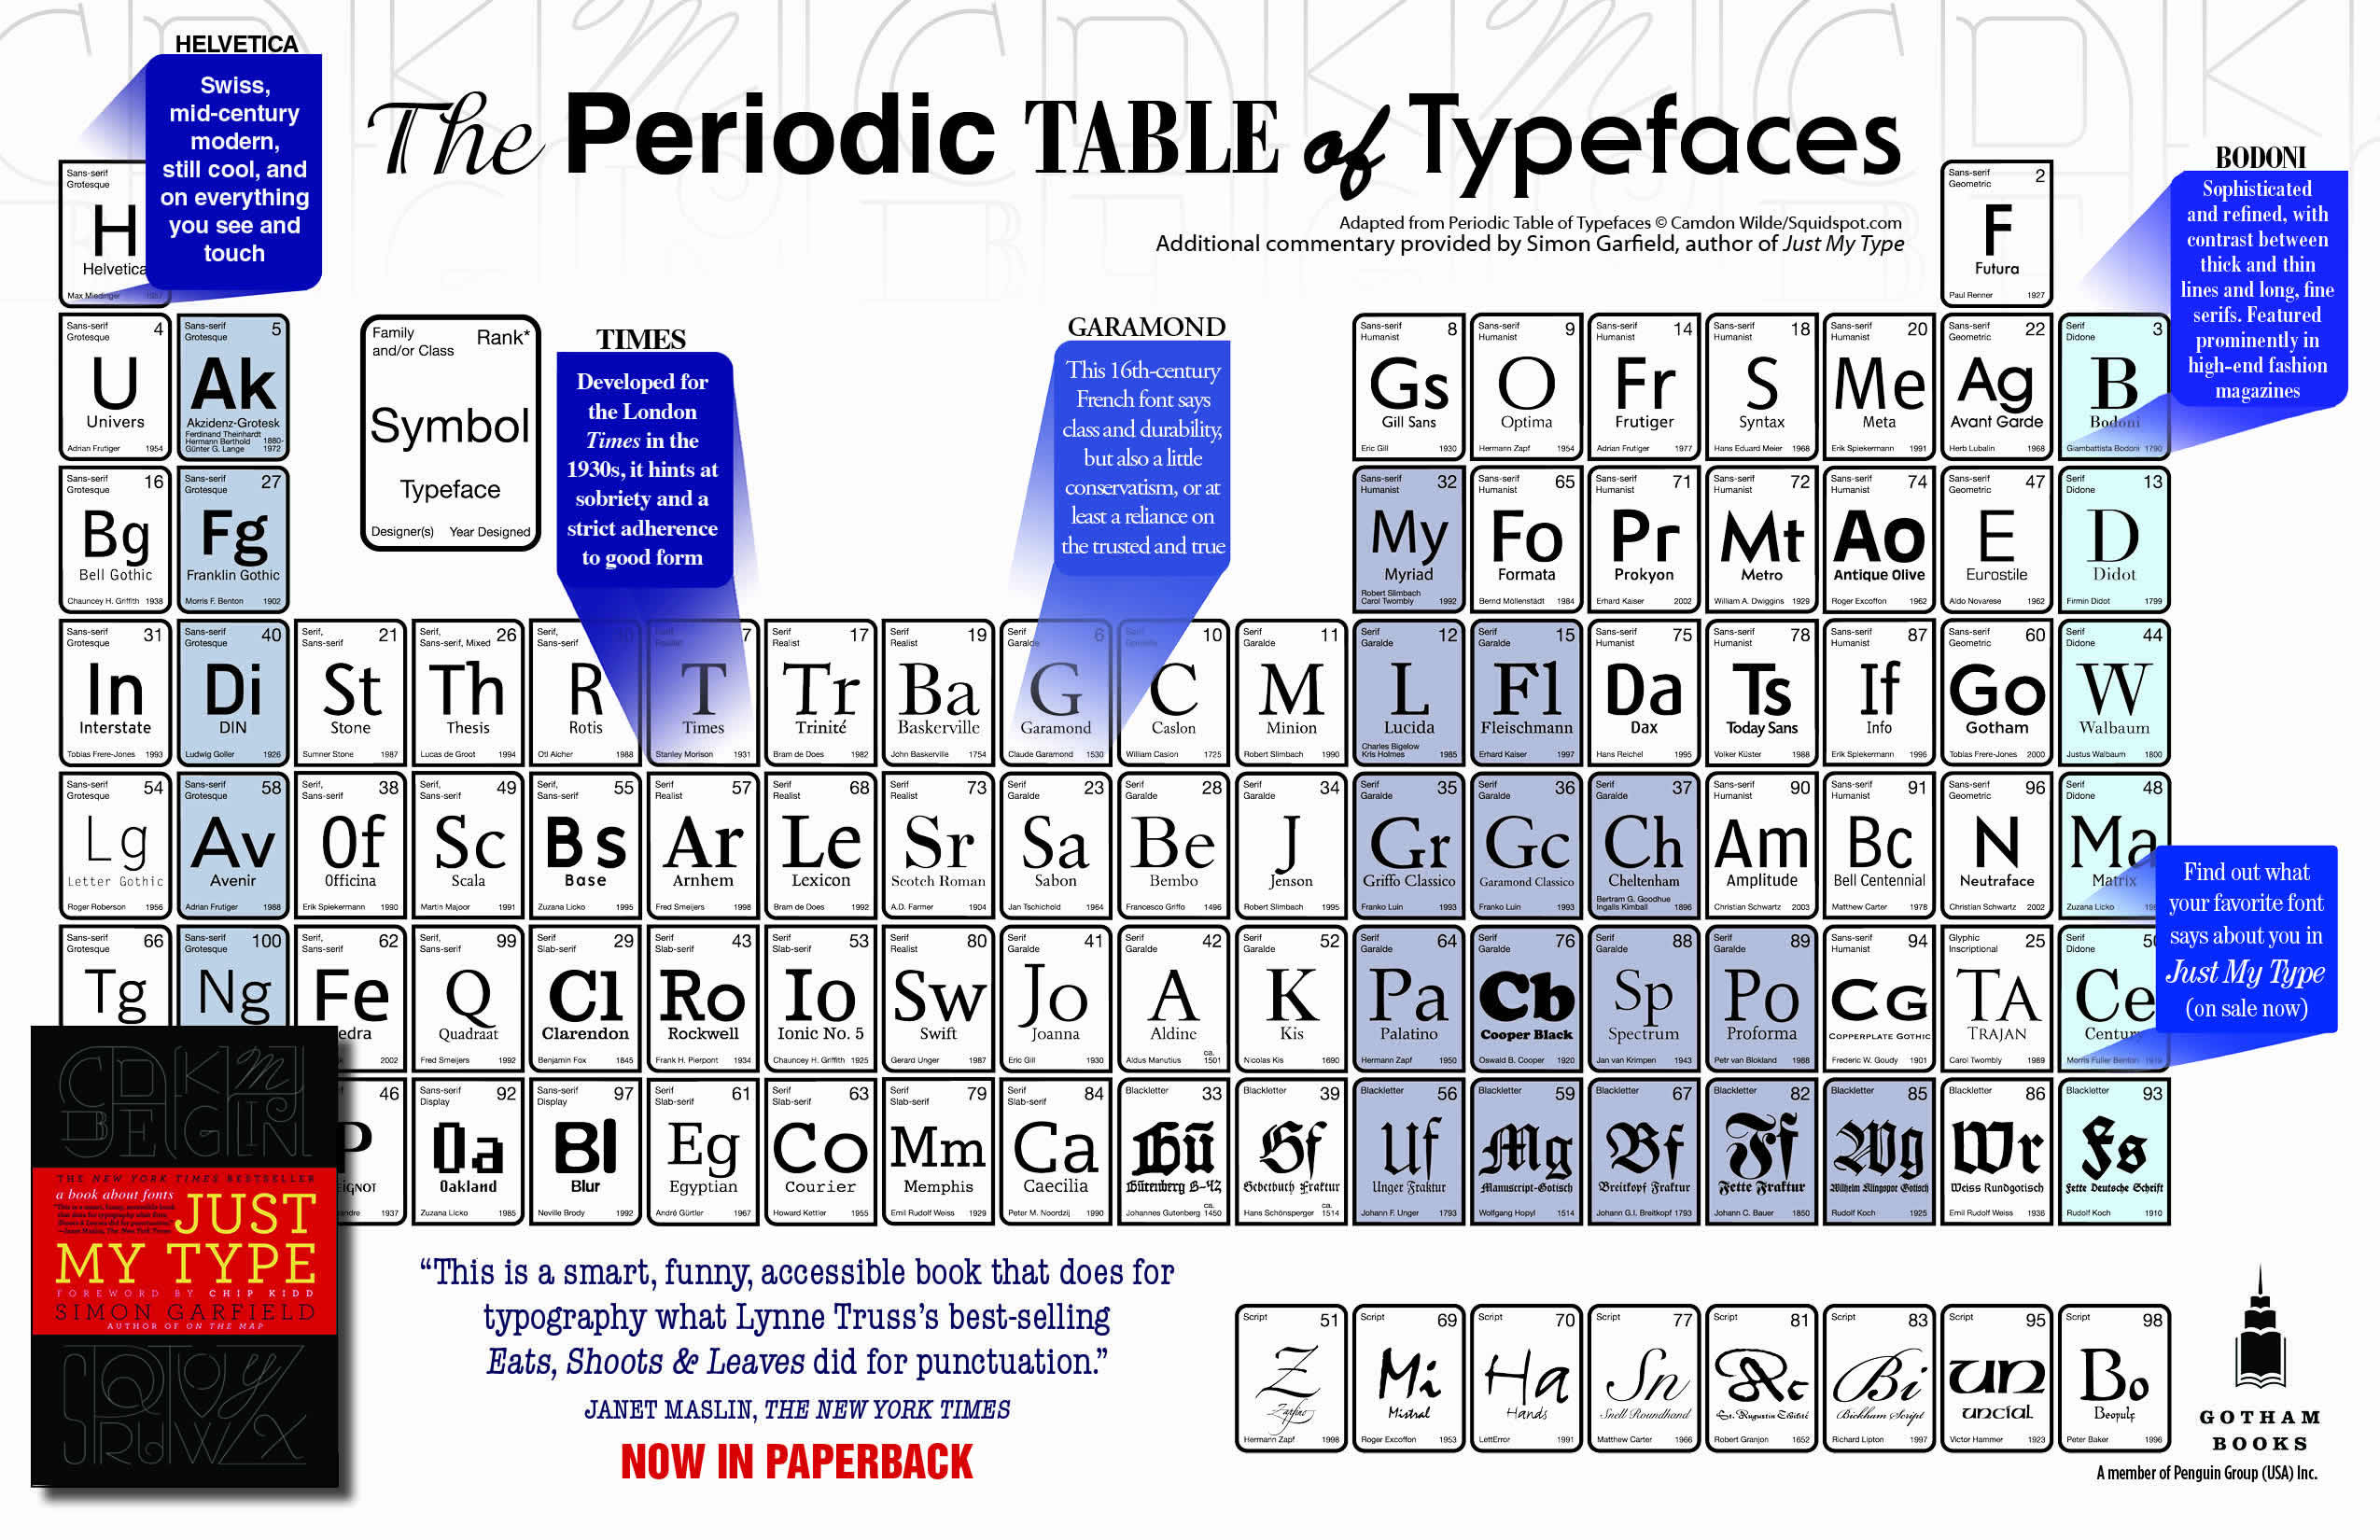 Periodic Table of Typefaces by Simon Garfield